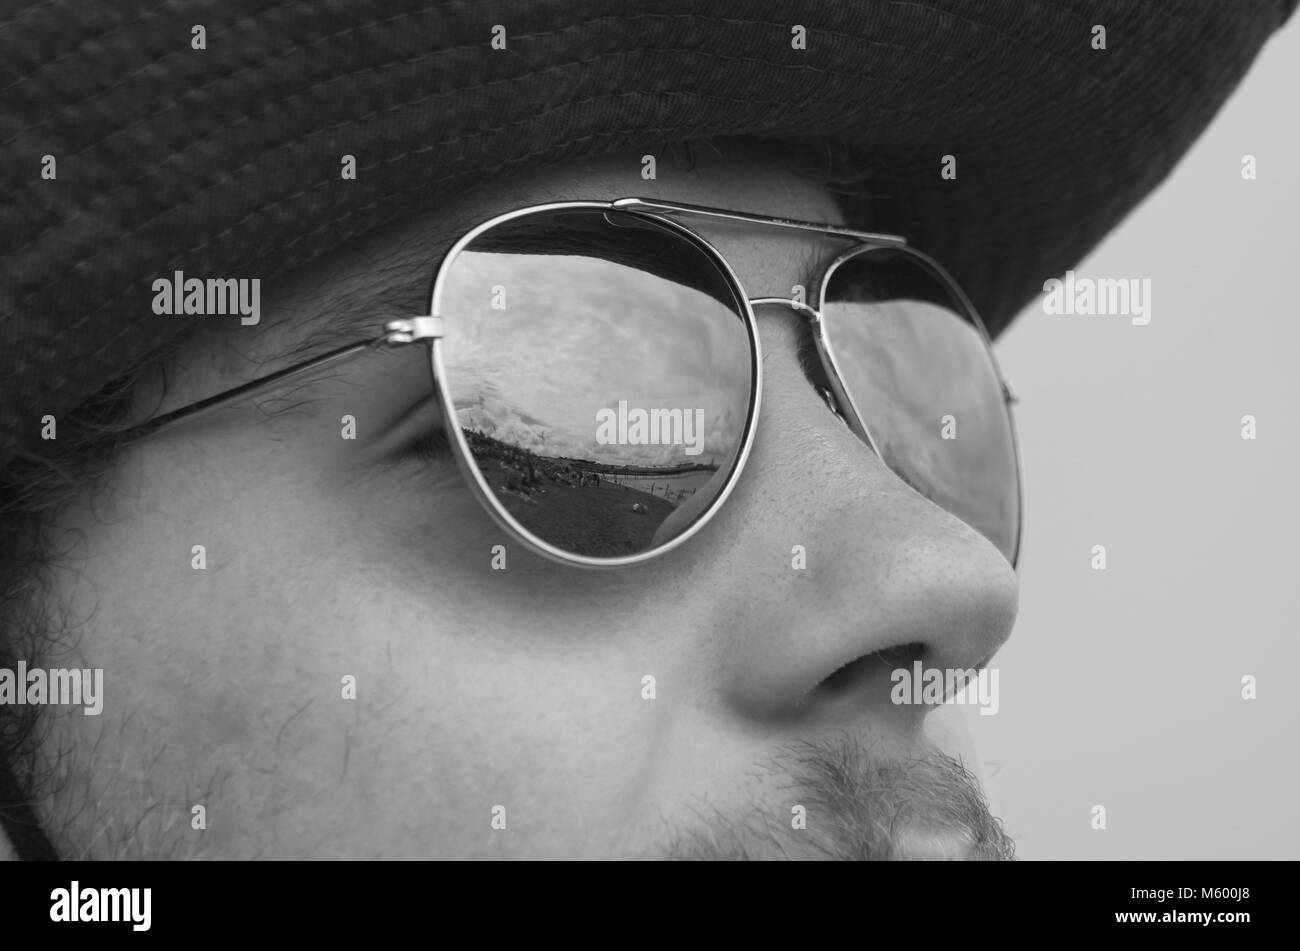 Young Trendy Man, Wearing Aviator Sunglasses and a Hat on a Summer Day. Black and White Photo. South Devon, UK. - Stock Image